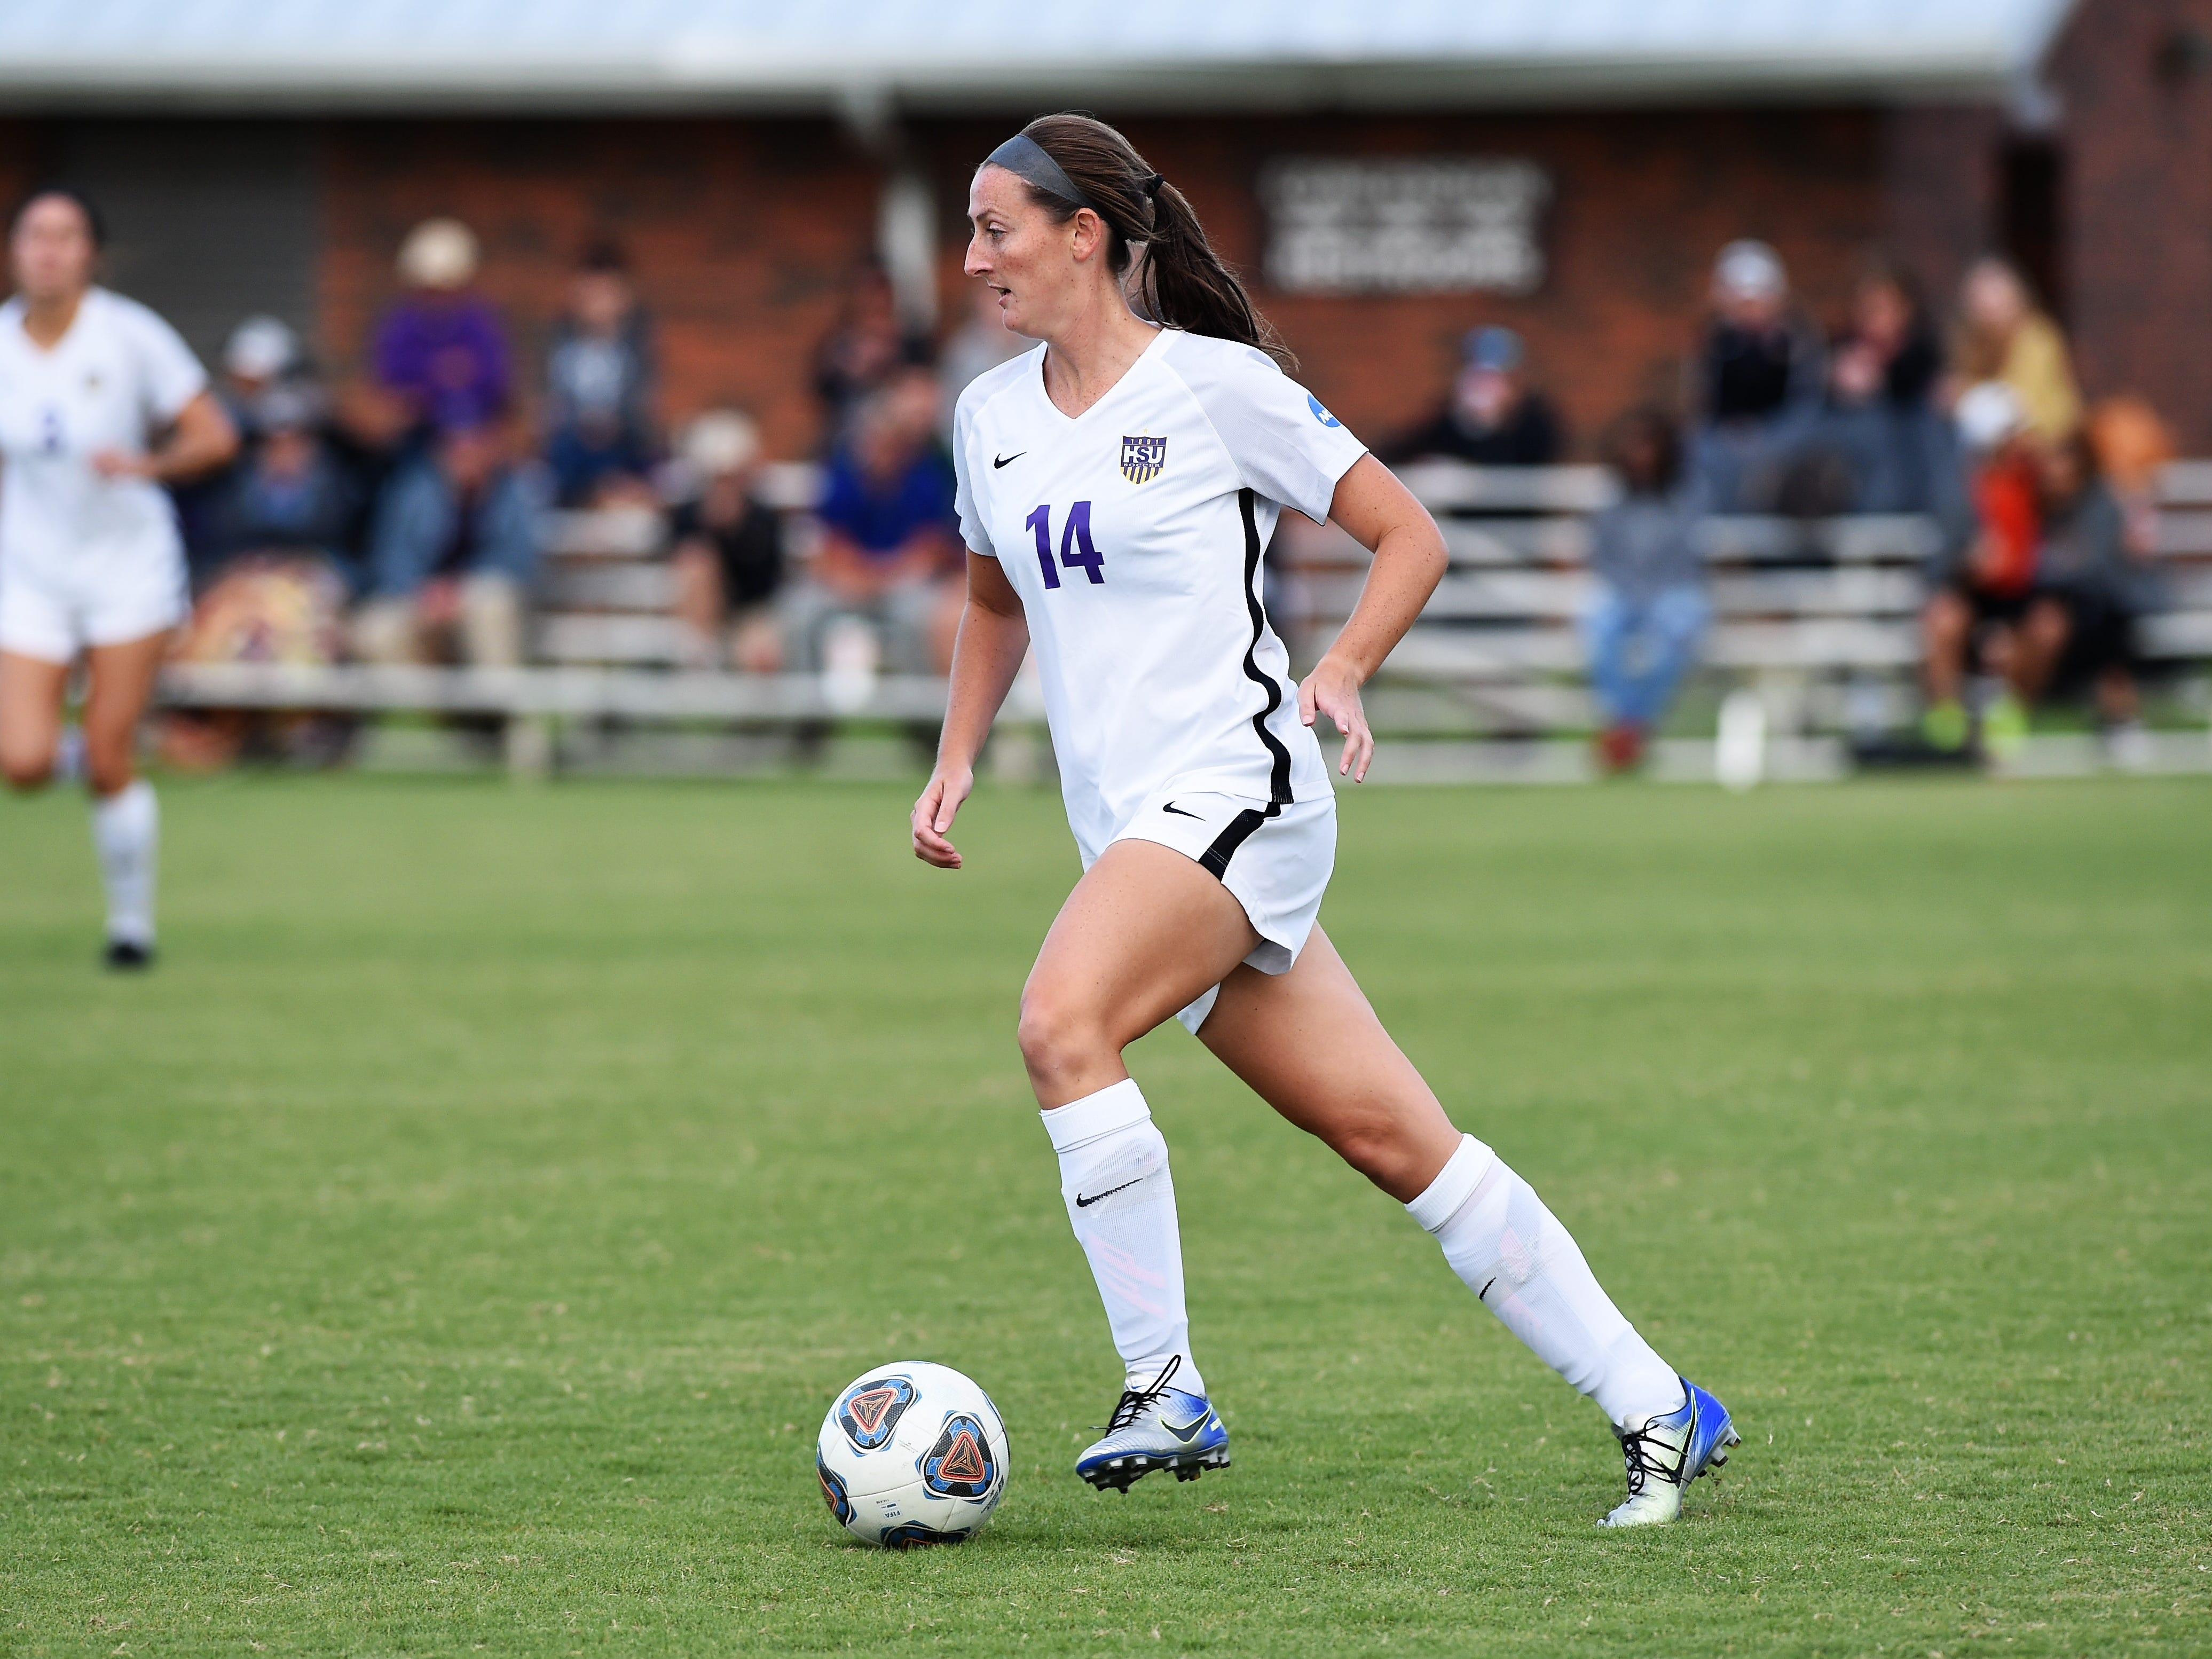 Hardin-Simmons defender Sarah Krisa (14) carries the ball out of the back against Howard Payne at the HSU Soccer Complex on Thursday, Oct. 11, 2018. The Cowgirls won 4-1.